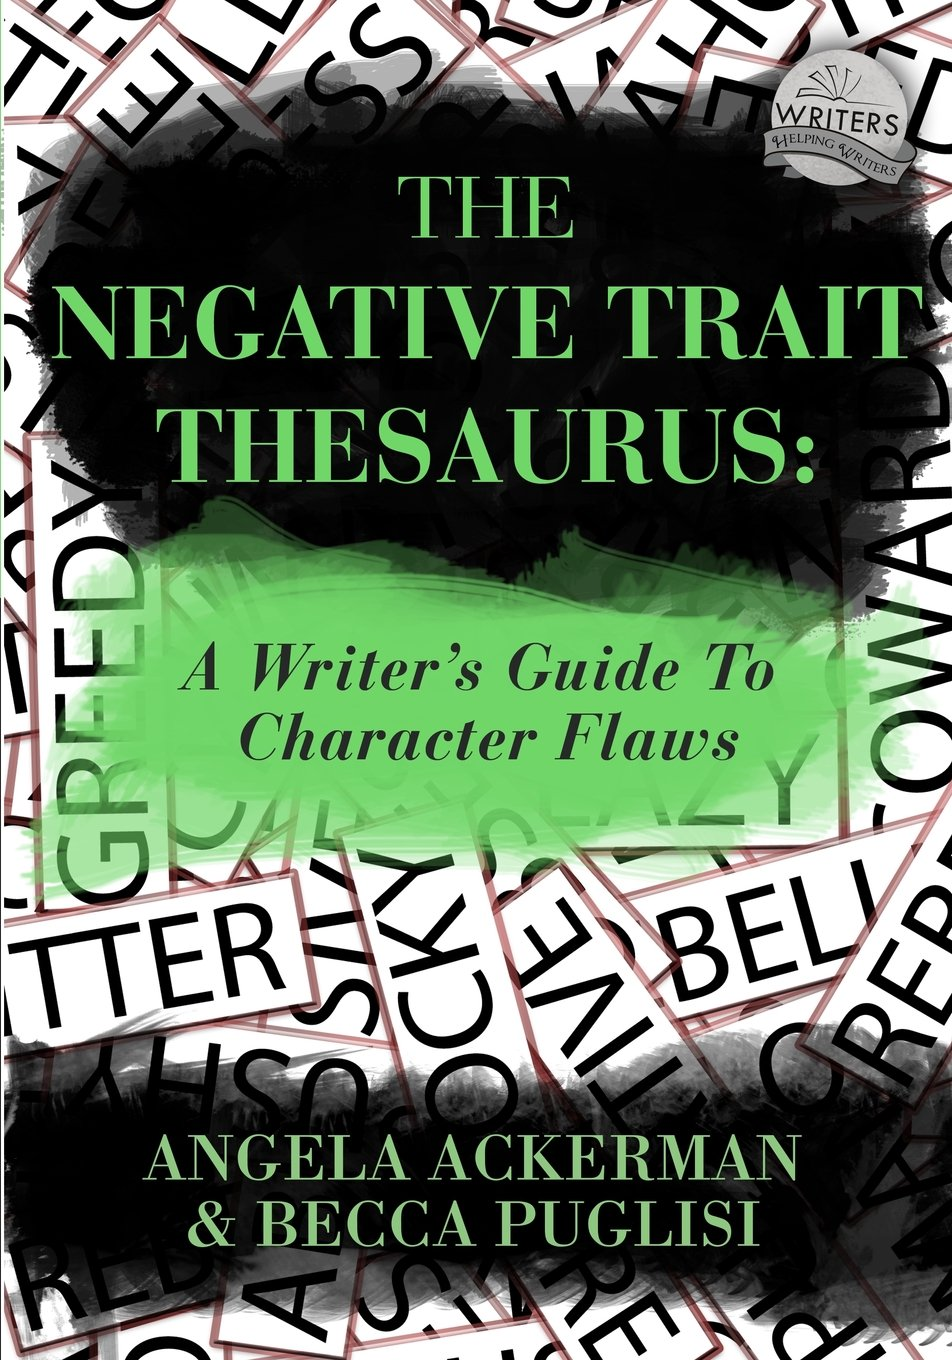 The Negative Trait Thesaurus: A Writer's Guide to Character Flaws Paperback – September 24, 2013 Angela Ackerman Becca Puglisi JADD Publishing 0989772500